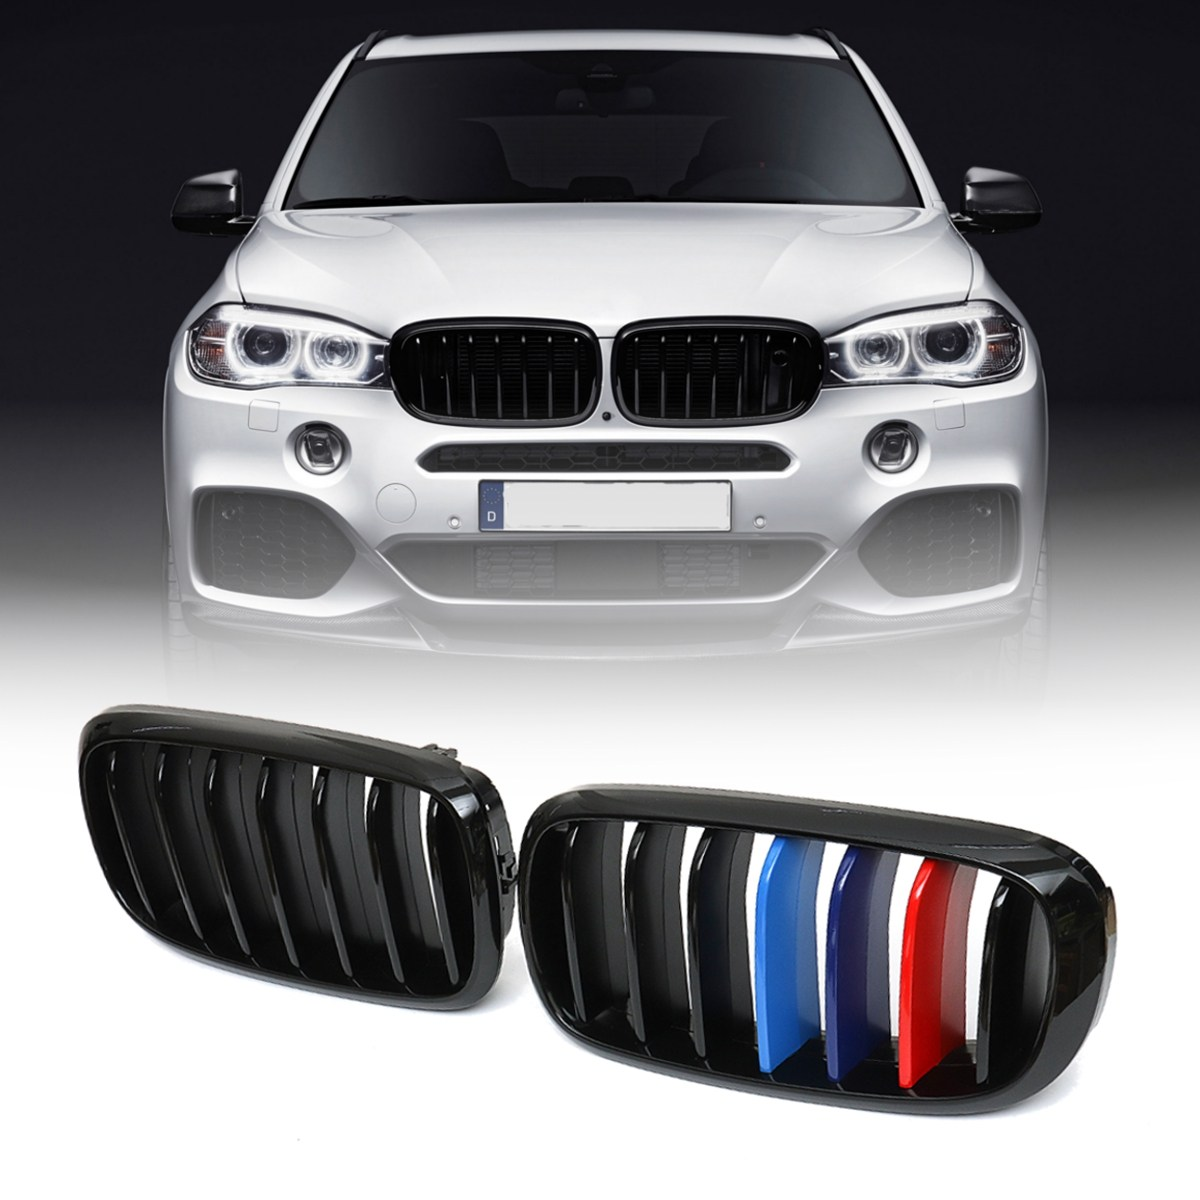 Pair Gloss Matt Black M-Color Front Kidney Racing Bumper Grille Grill For BMW X5 F15 X6 F16 X5M F85 X6M F86 2014 2015 2016 2017 x5 f15 x6 f16 abs gloss black grill for bmw x5 x6 f15 f16 front bumper grille kidney mesh